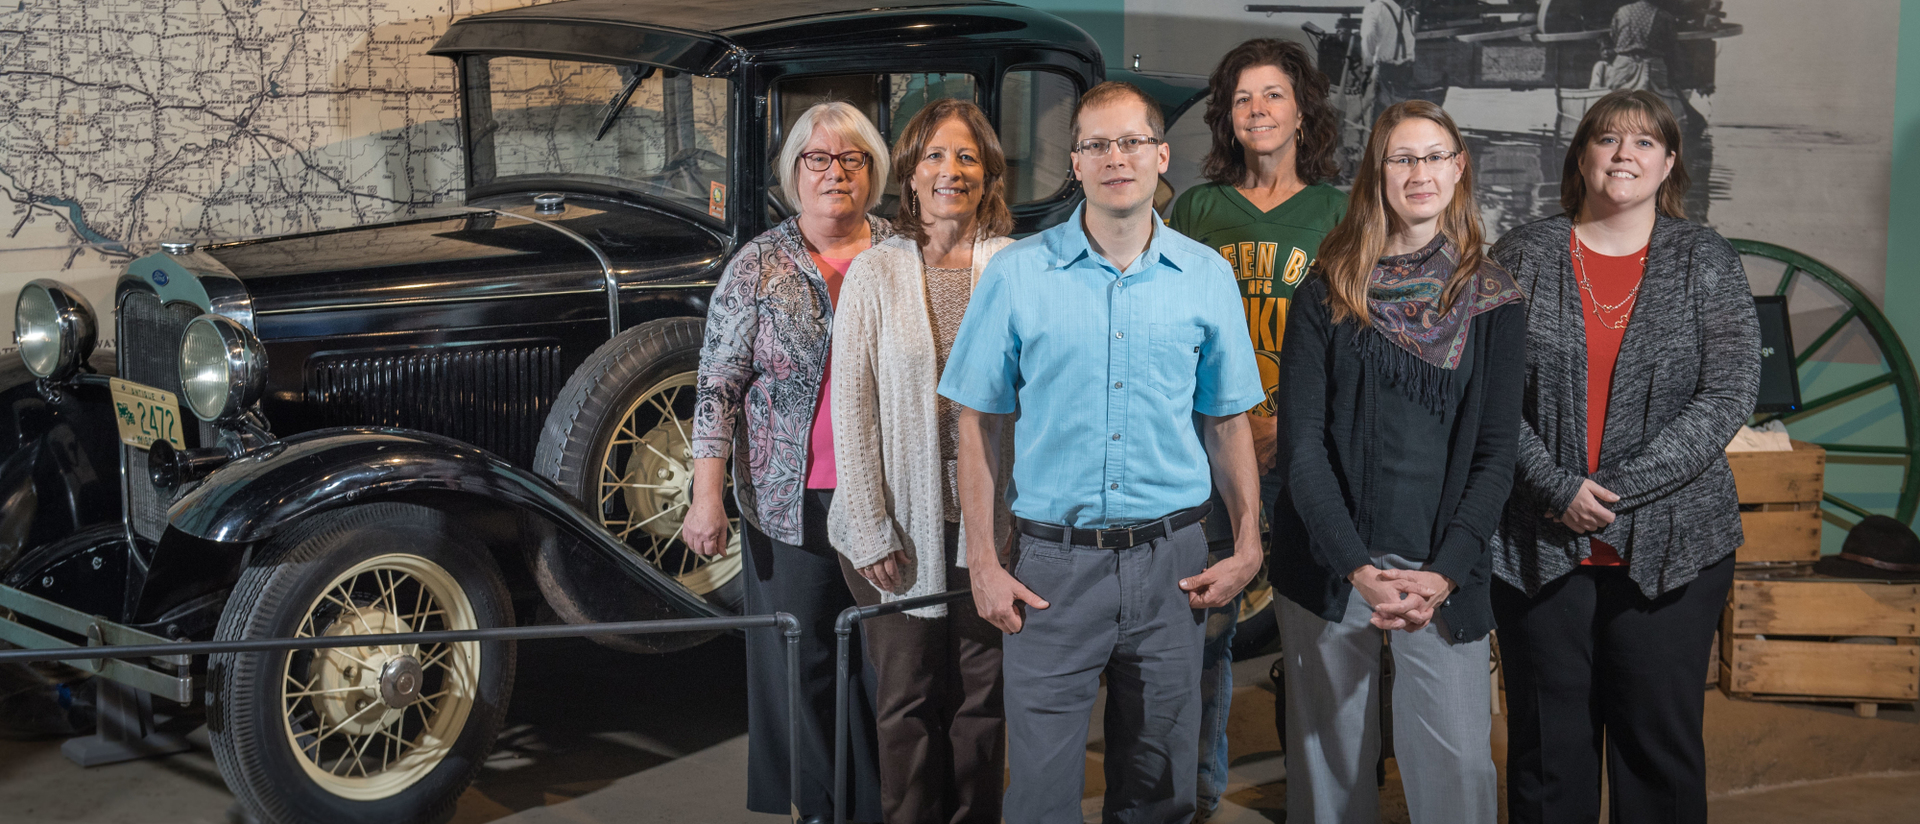 Alumni working at Chippewa Valley Museum